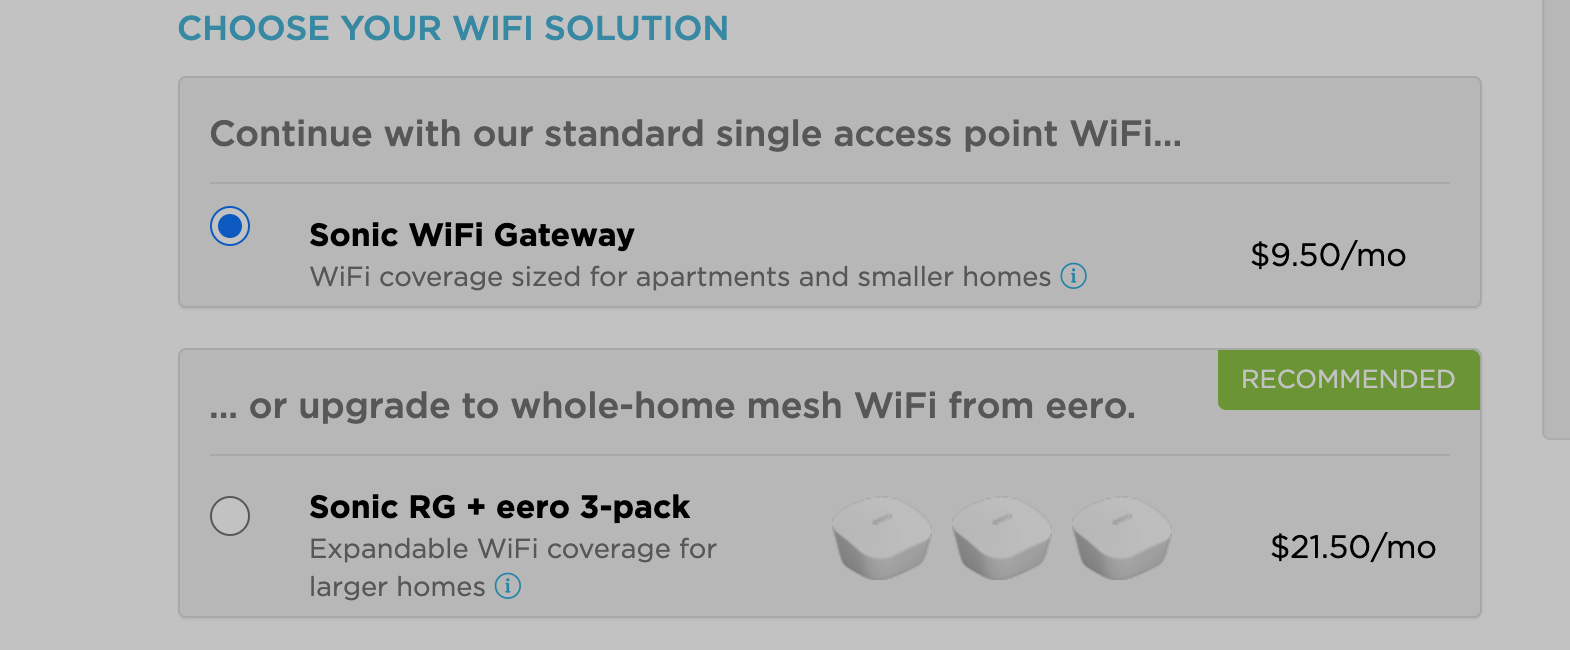 Sonic router options.